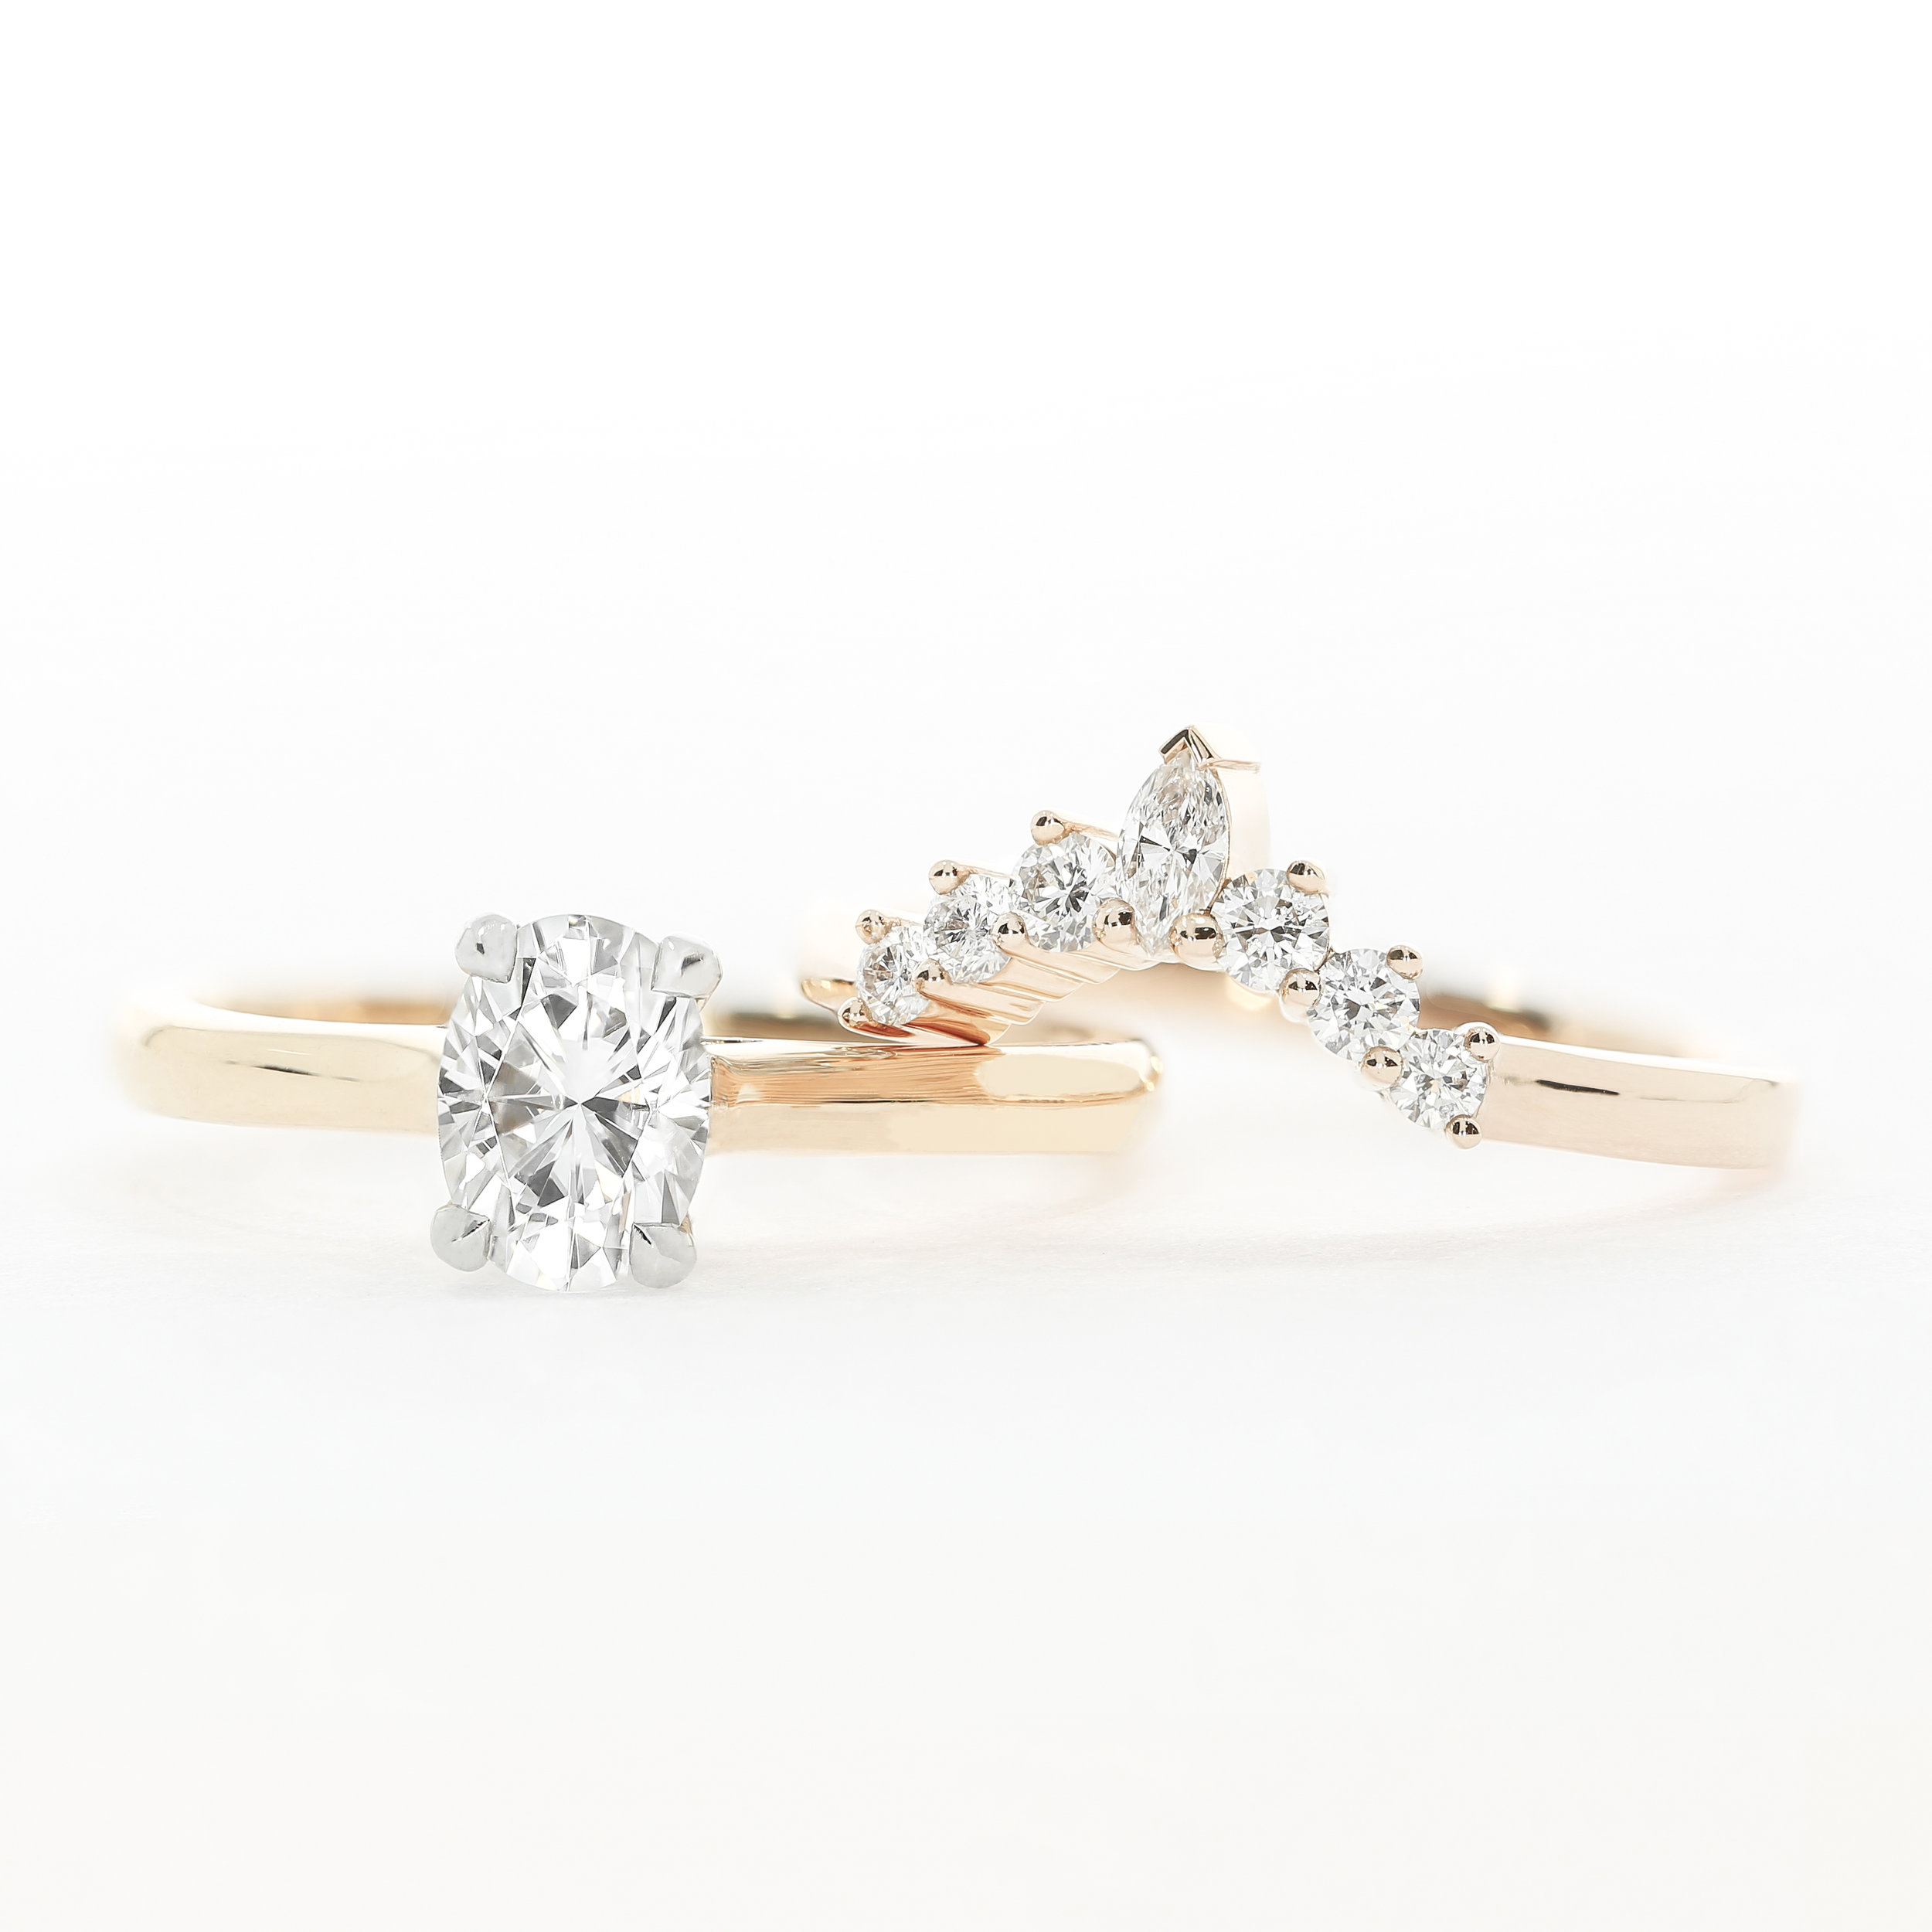 Oval Tierney oval solitaire  engagement ring and bespoke commission  contoured wedding band